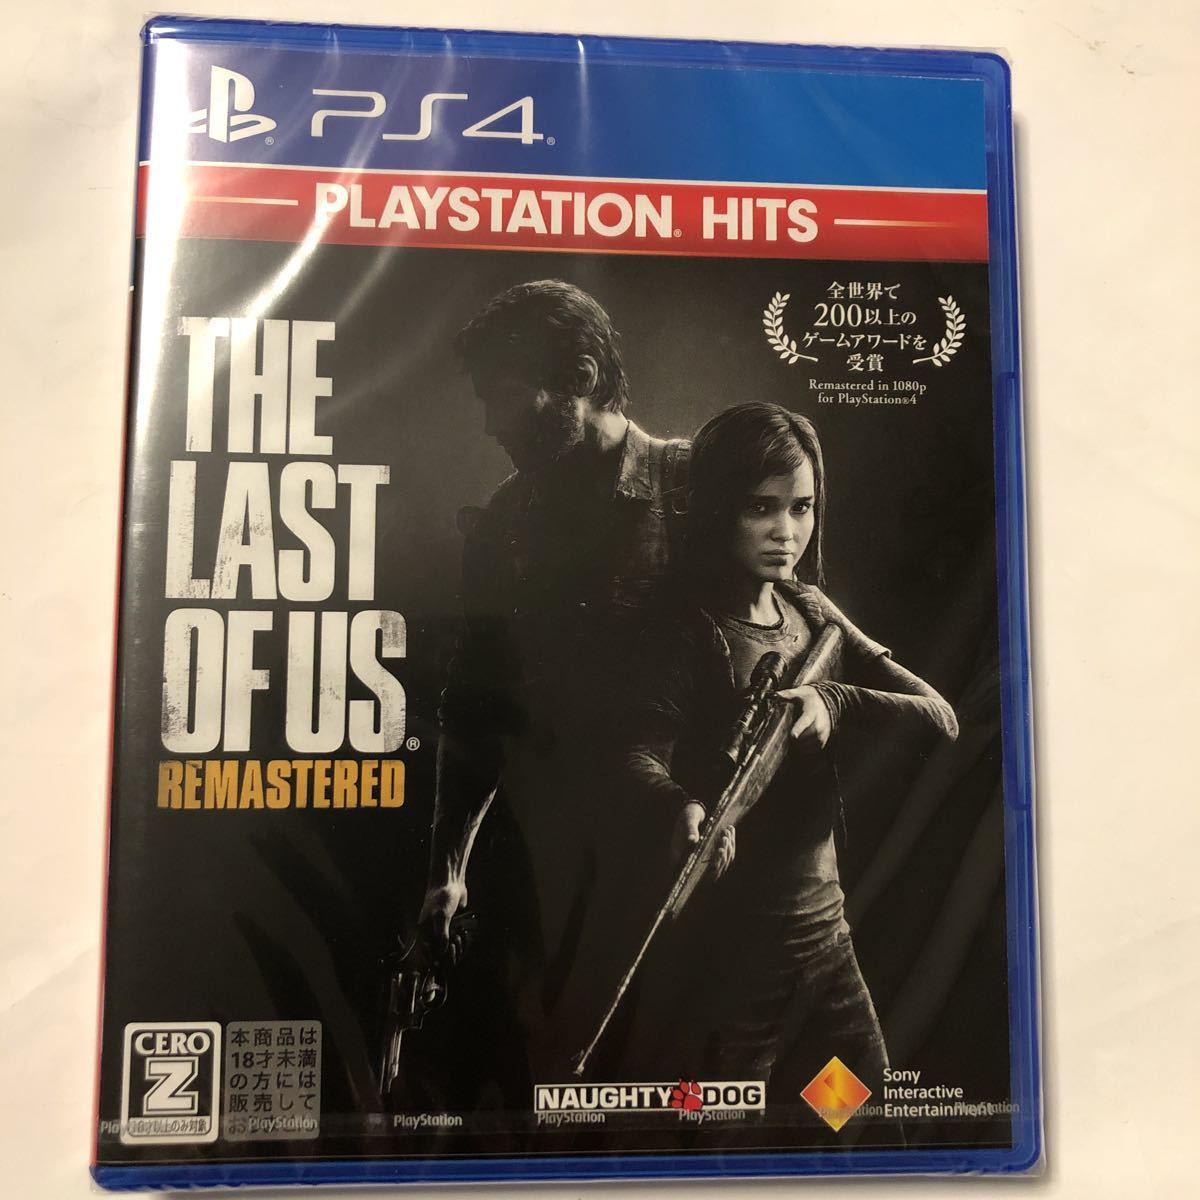 PS4 THE LAST OF US ラストオブアス 新品未開封 送料無料 即決